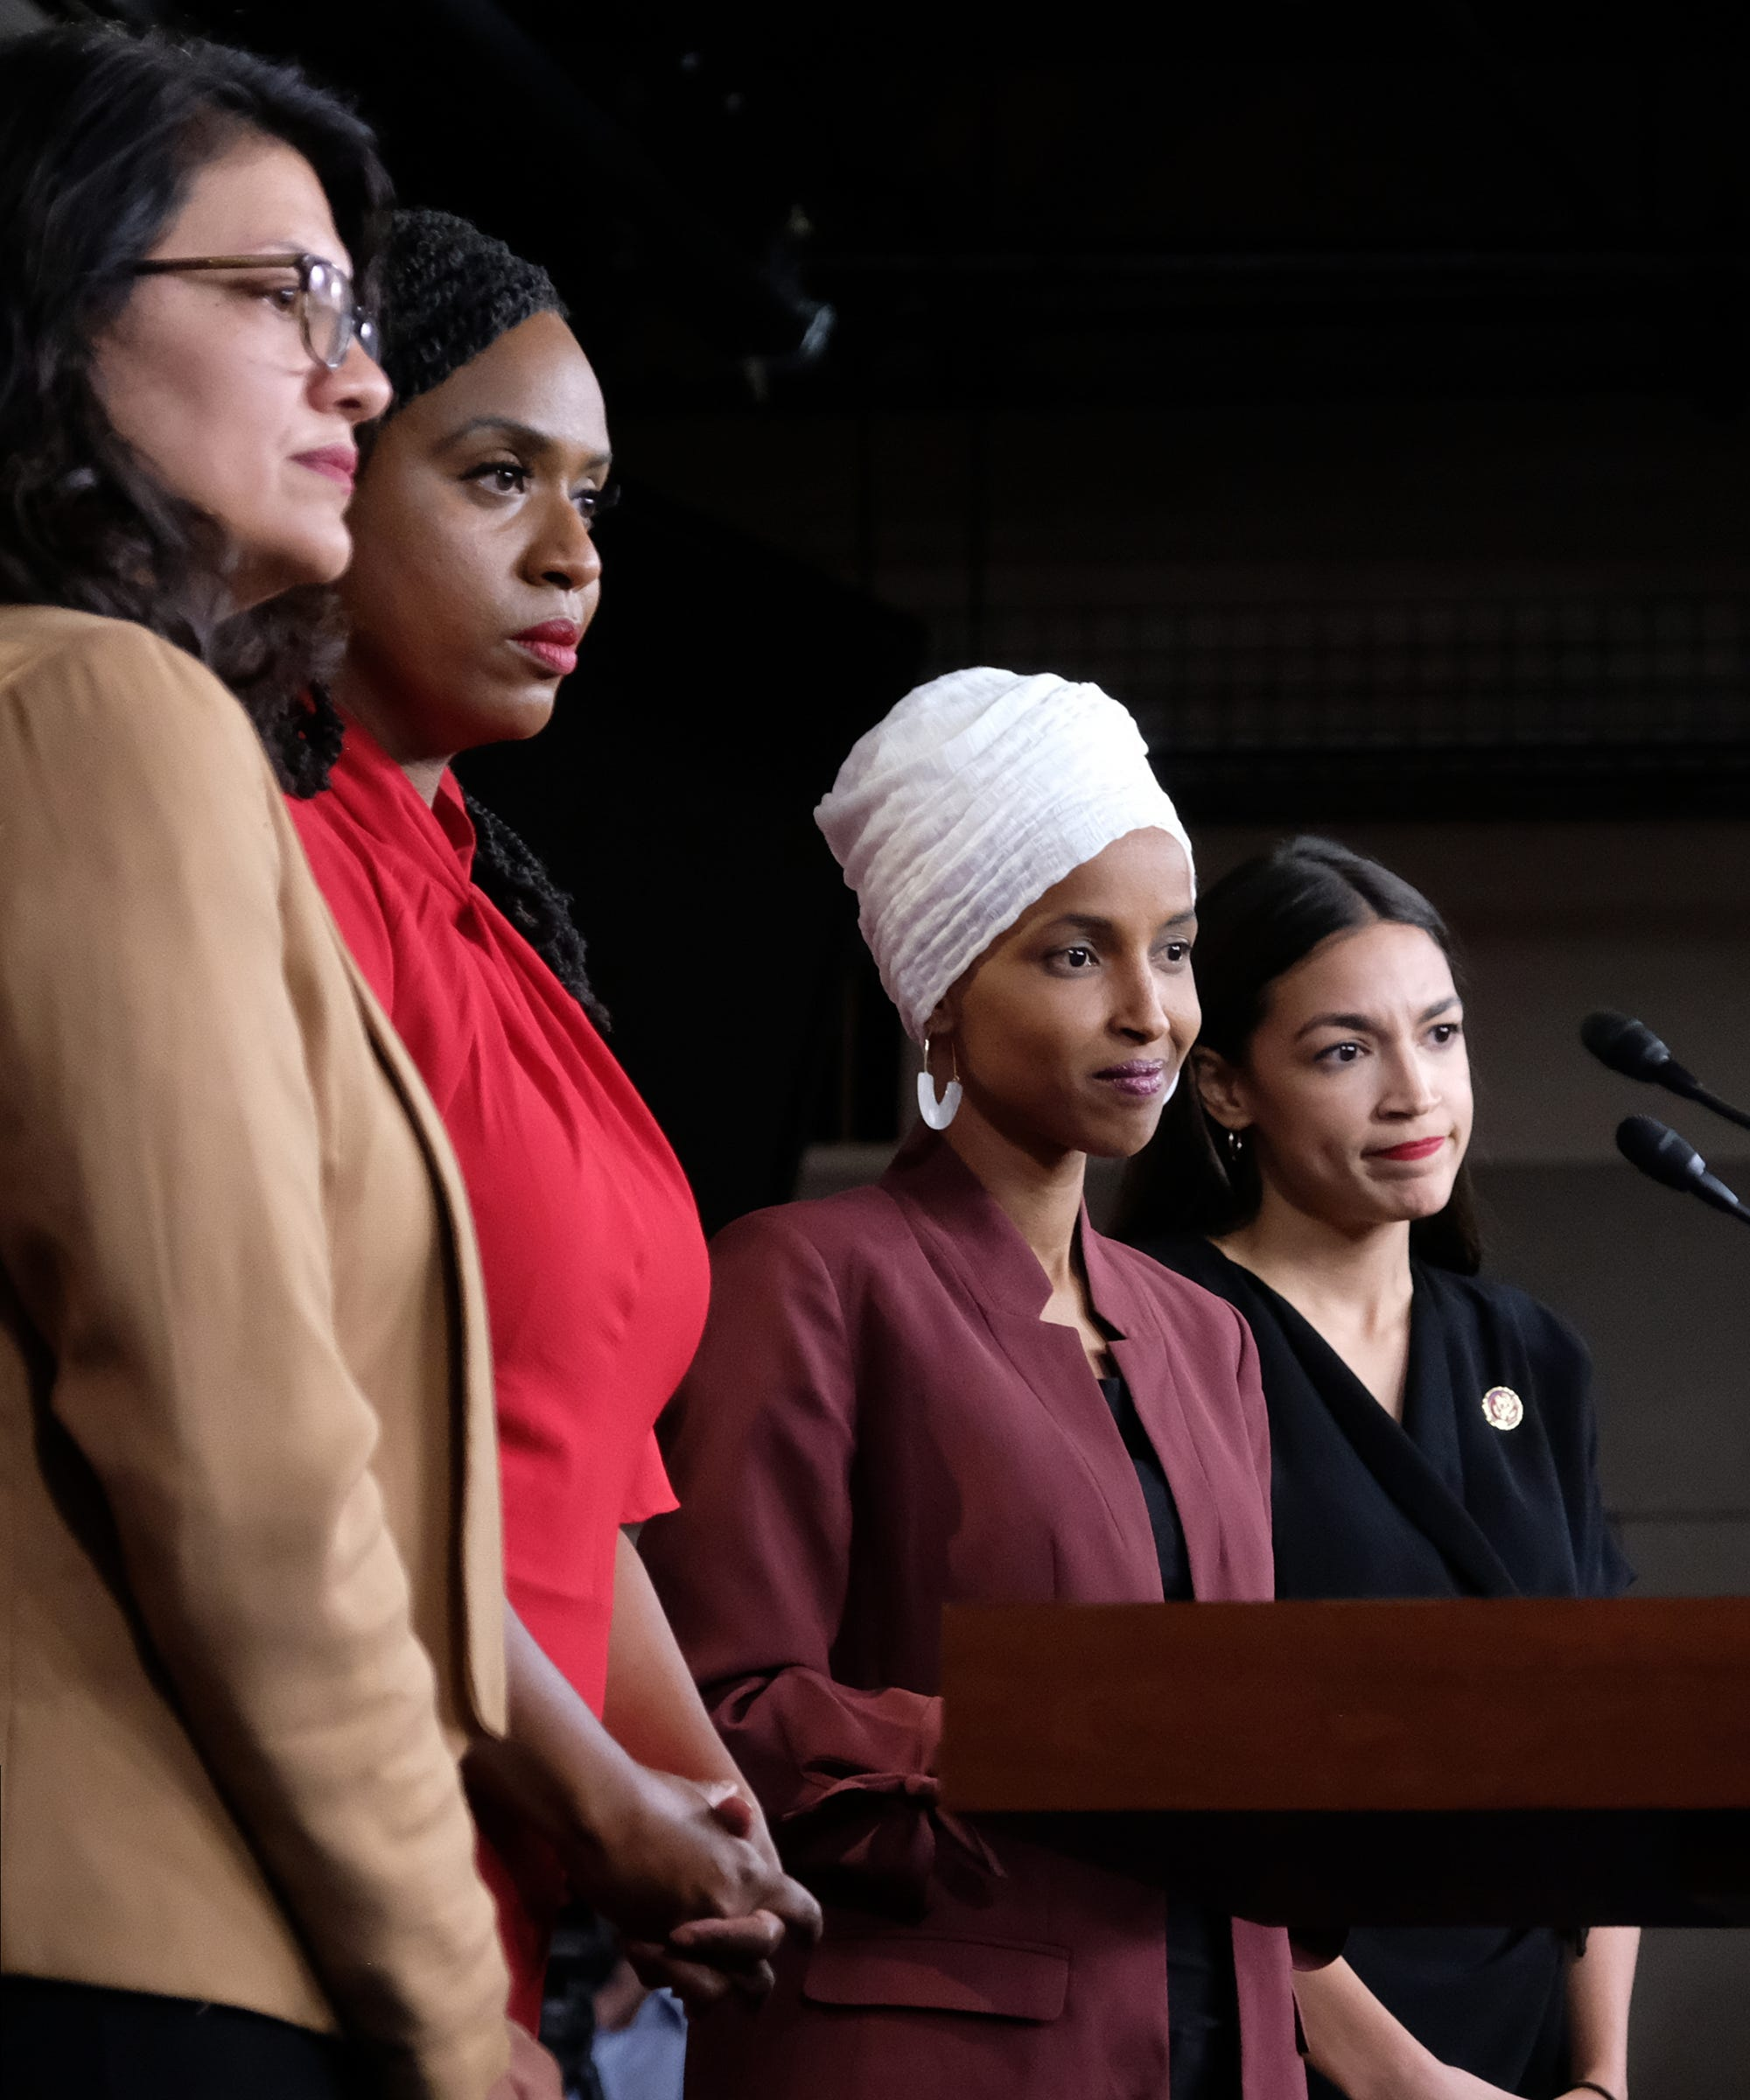 The Squad Women In Congress Are More Than Just Friends